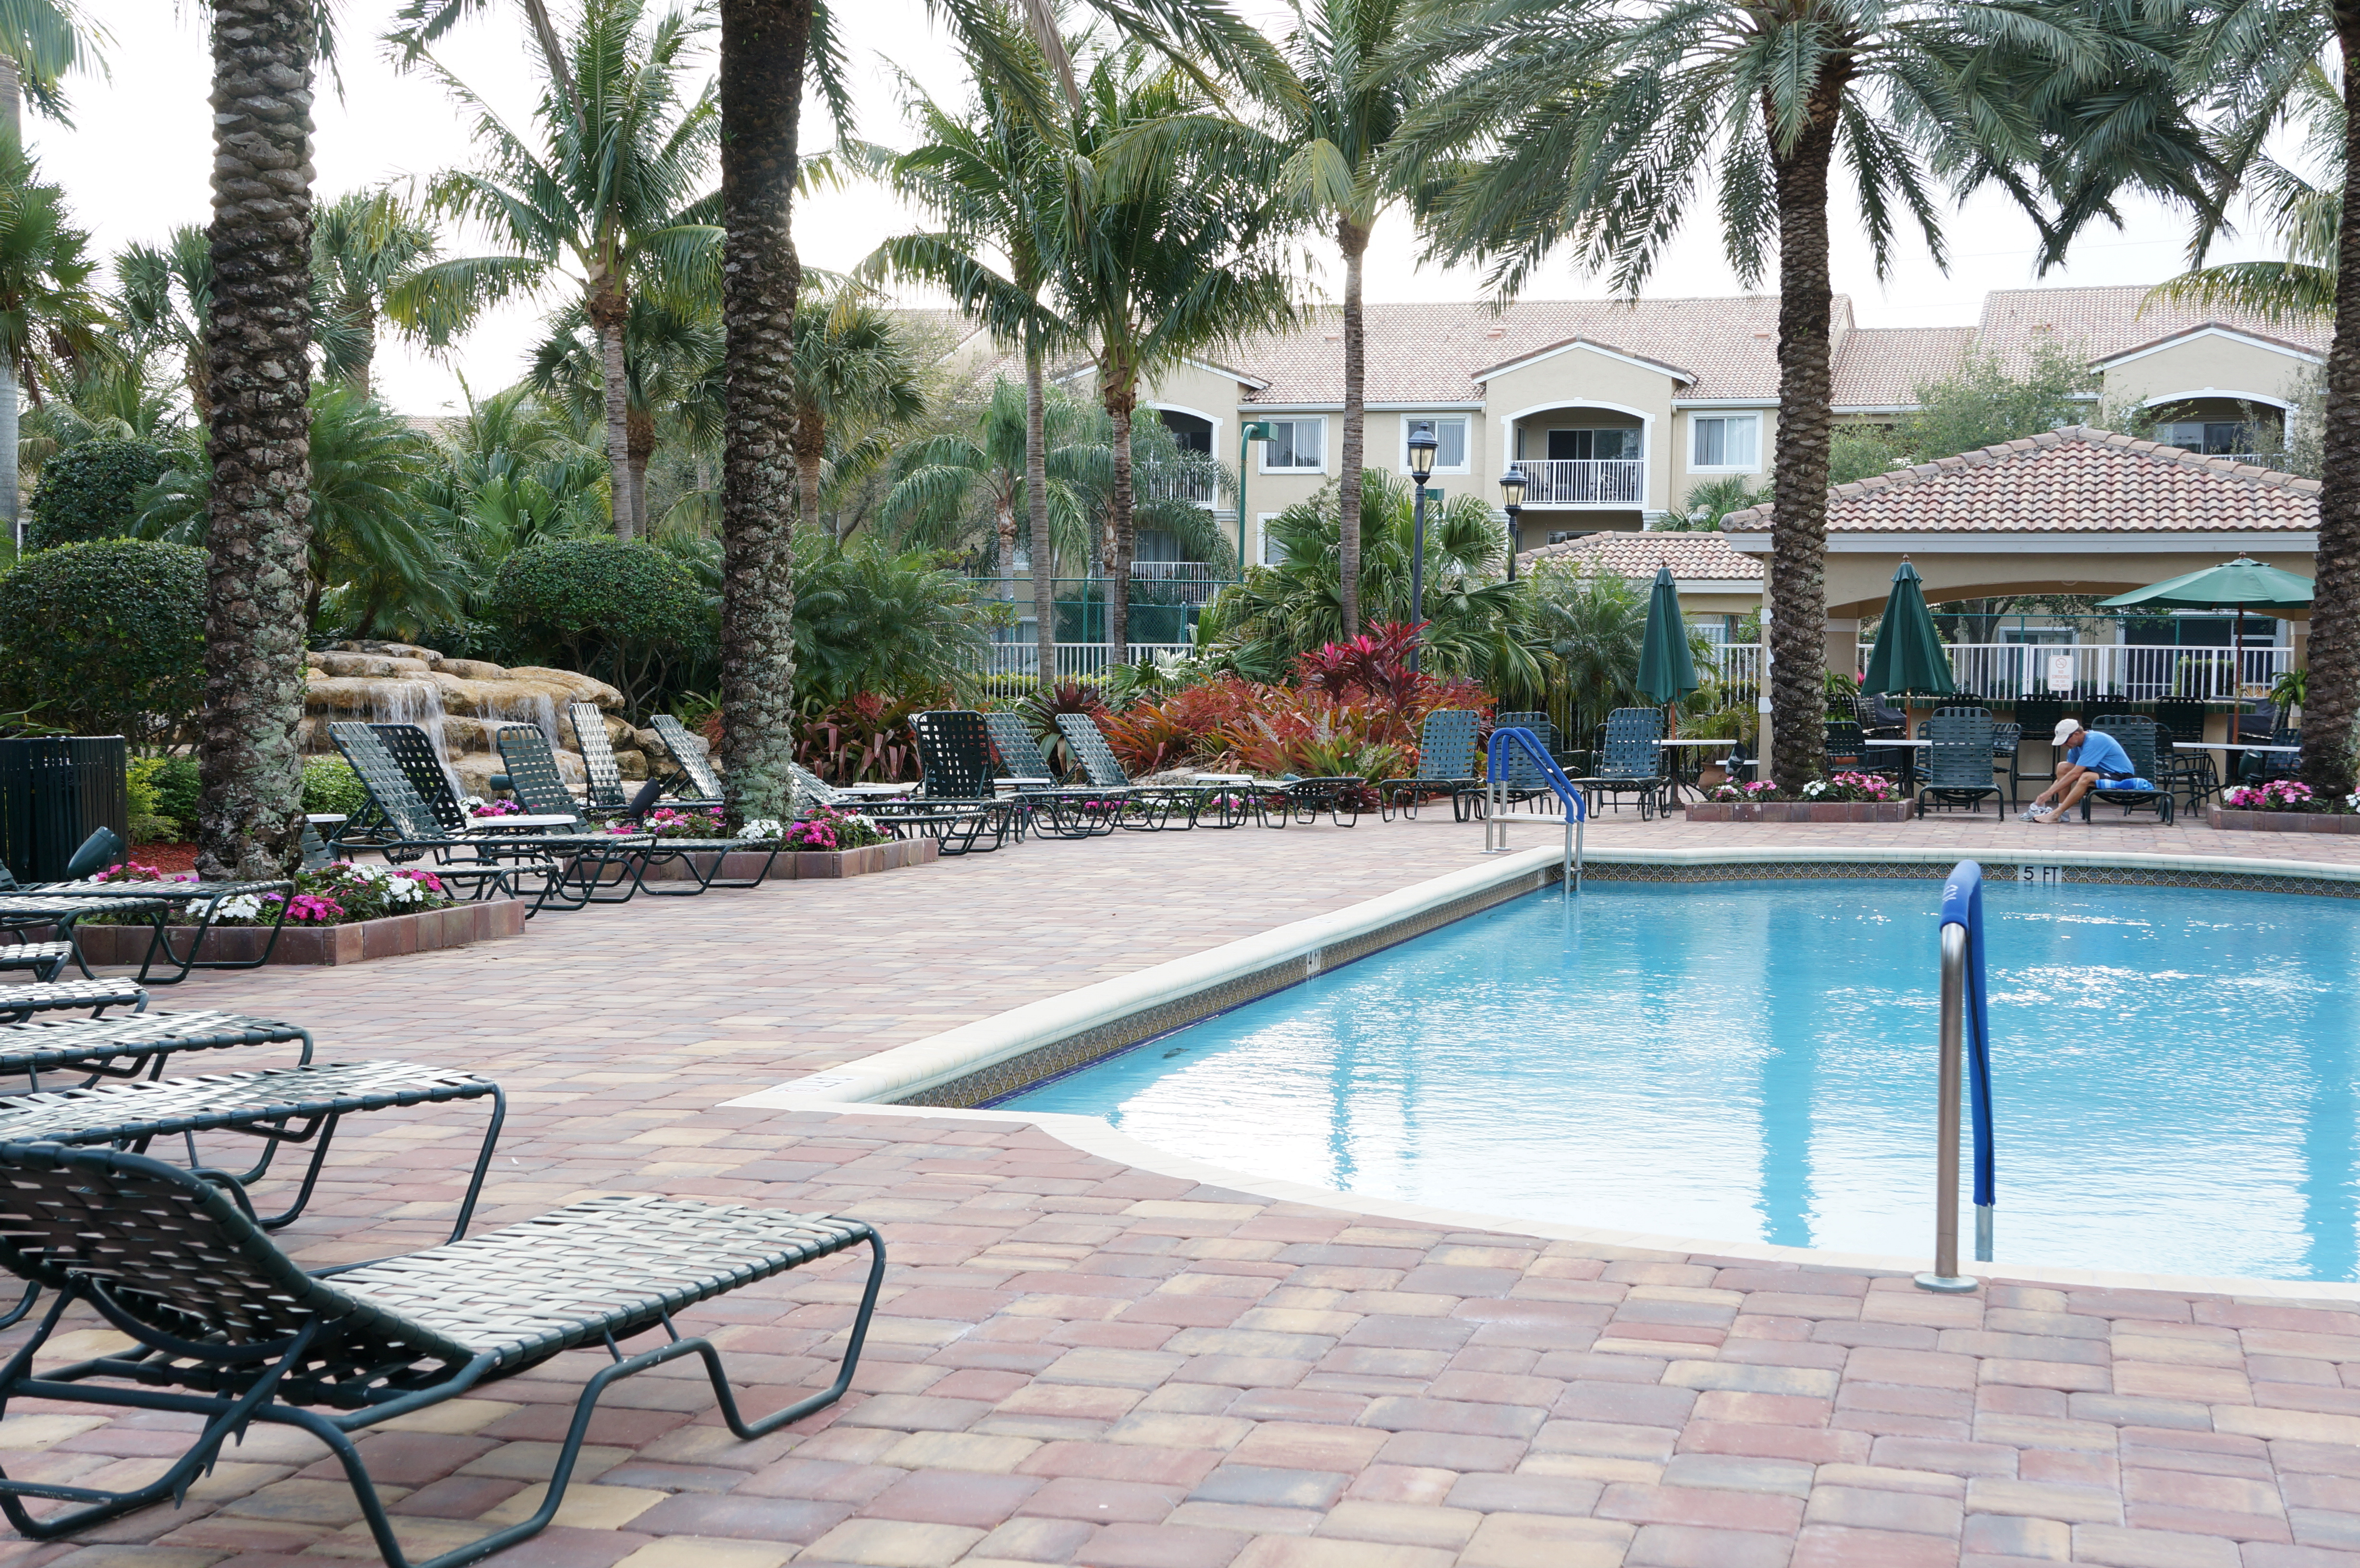 Lighthouse Cove community pool Tequesta